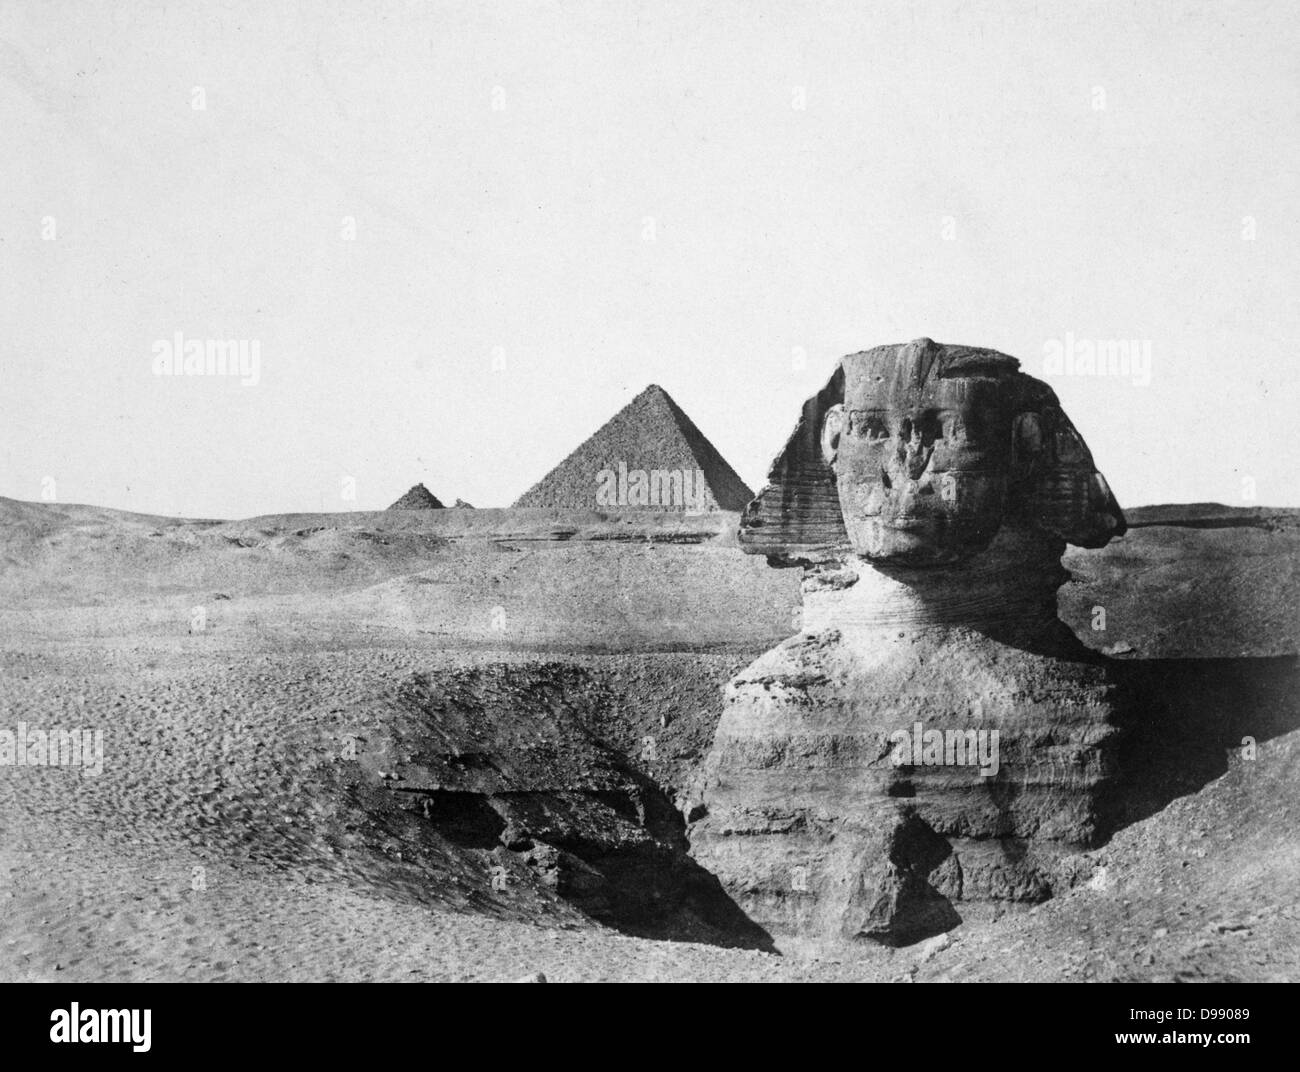 The Spinx with Pyramids in the background, 1852. Giza, Egypt. Photograph by Maxime Du Camp (1822-1894) French photographer. - Stock Image